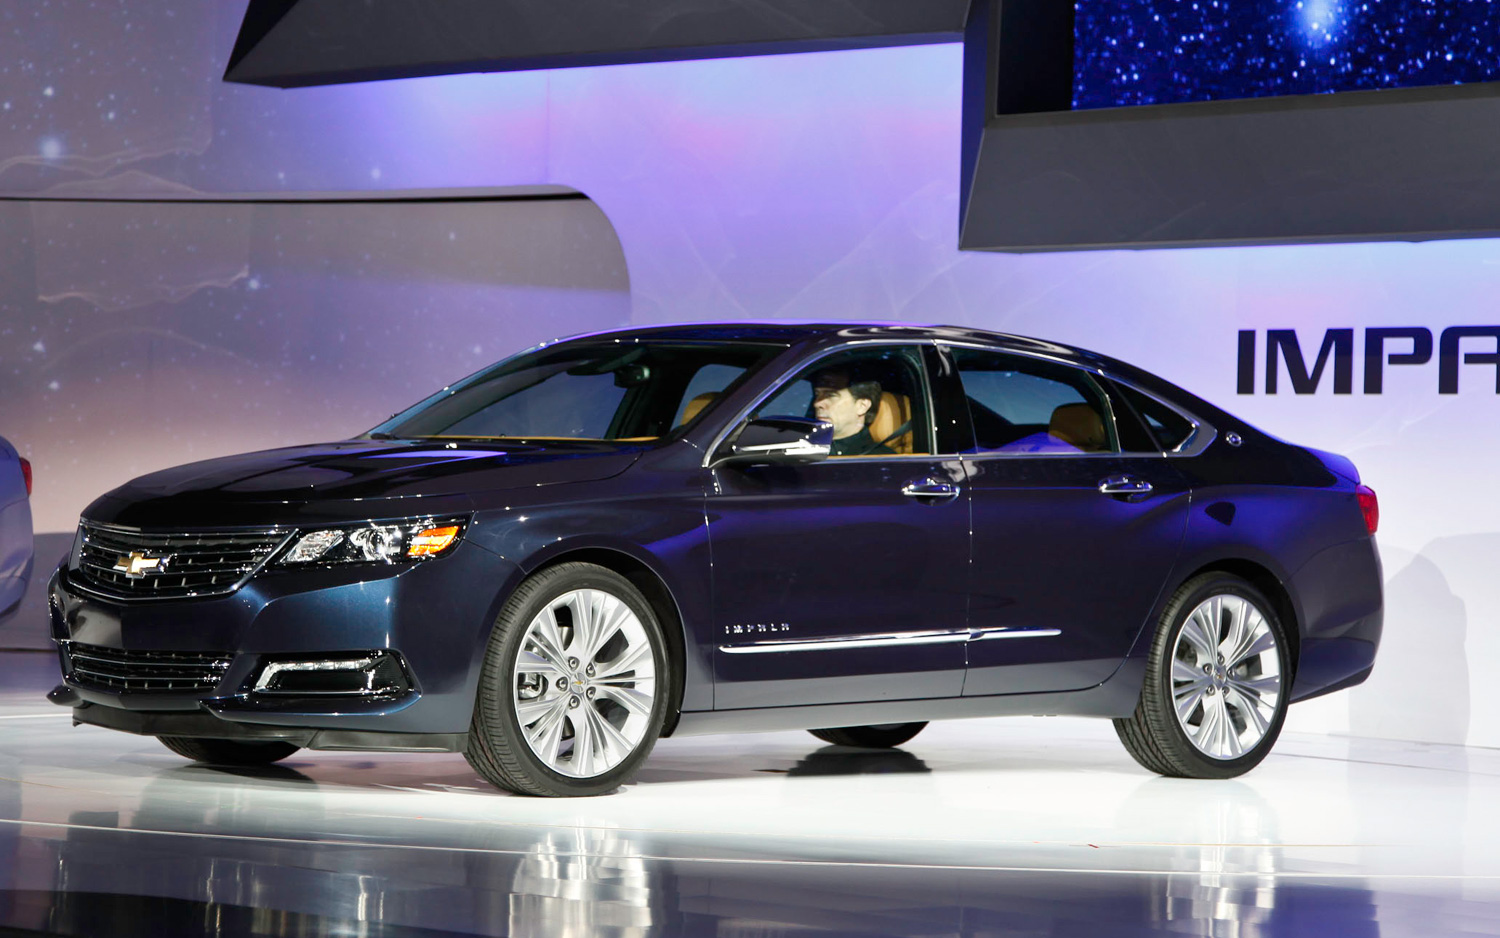 medium resolution of 2012 new york updated 2014 chevy impala and 2013 chevy traverse fight for attention